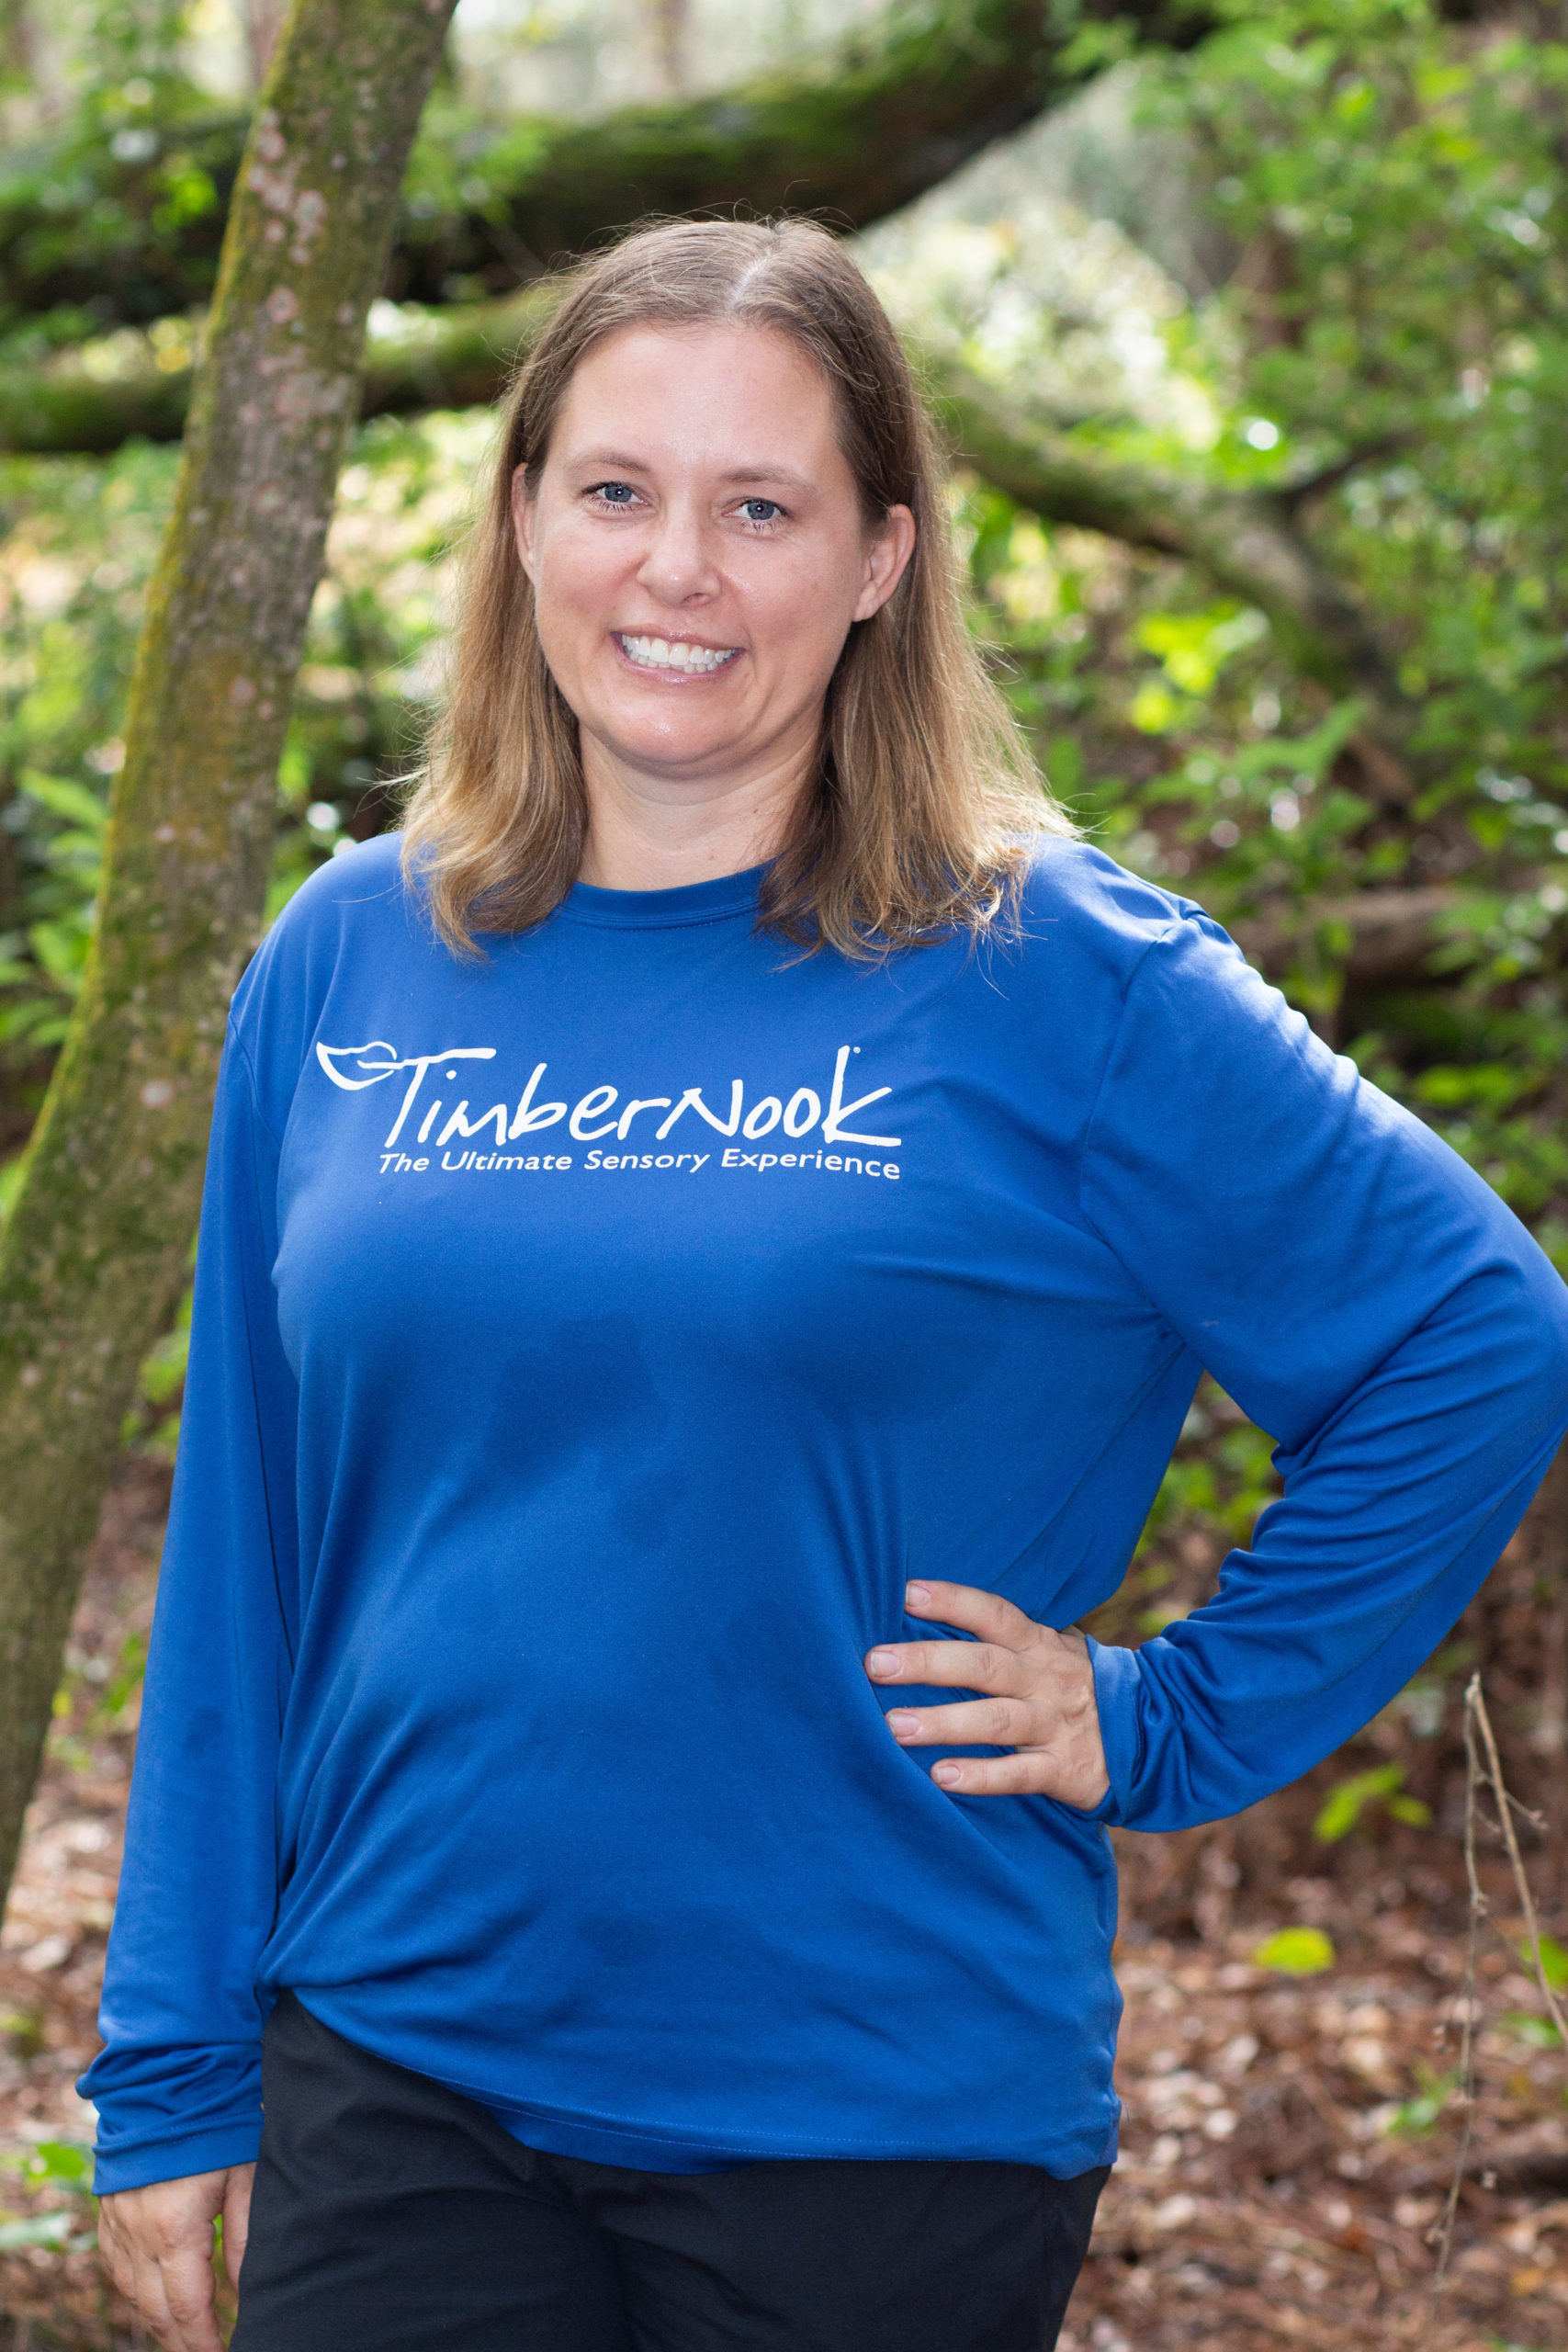 Timbernook Certified Provider